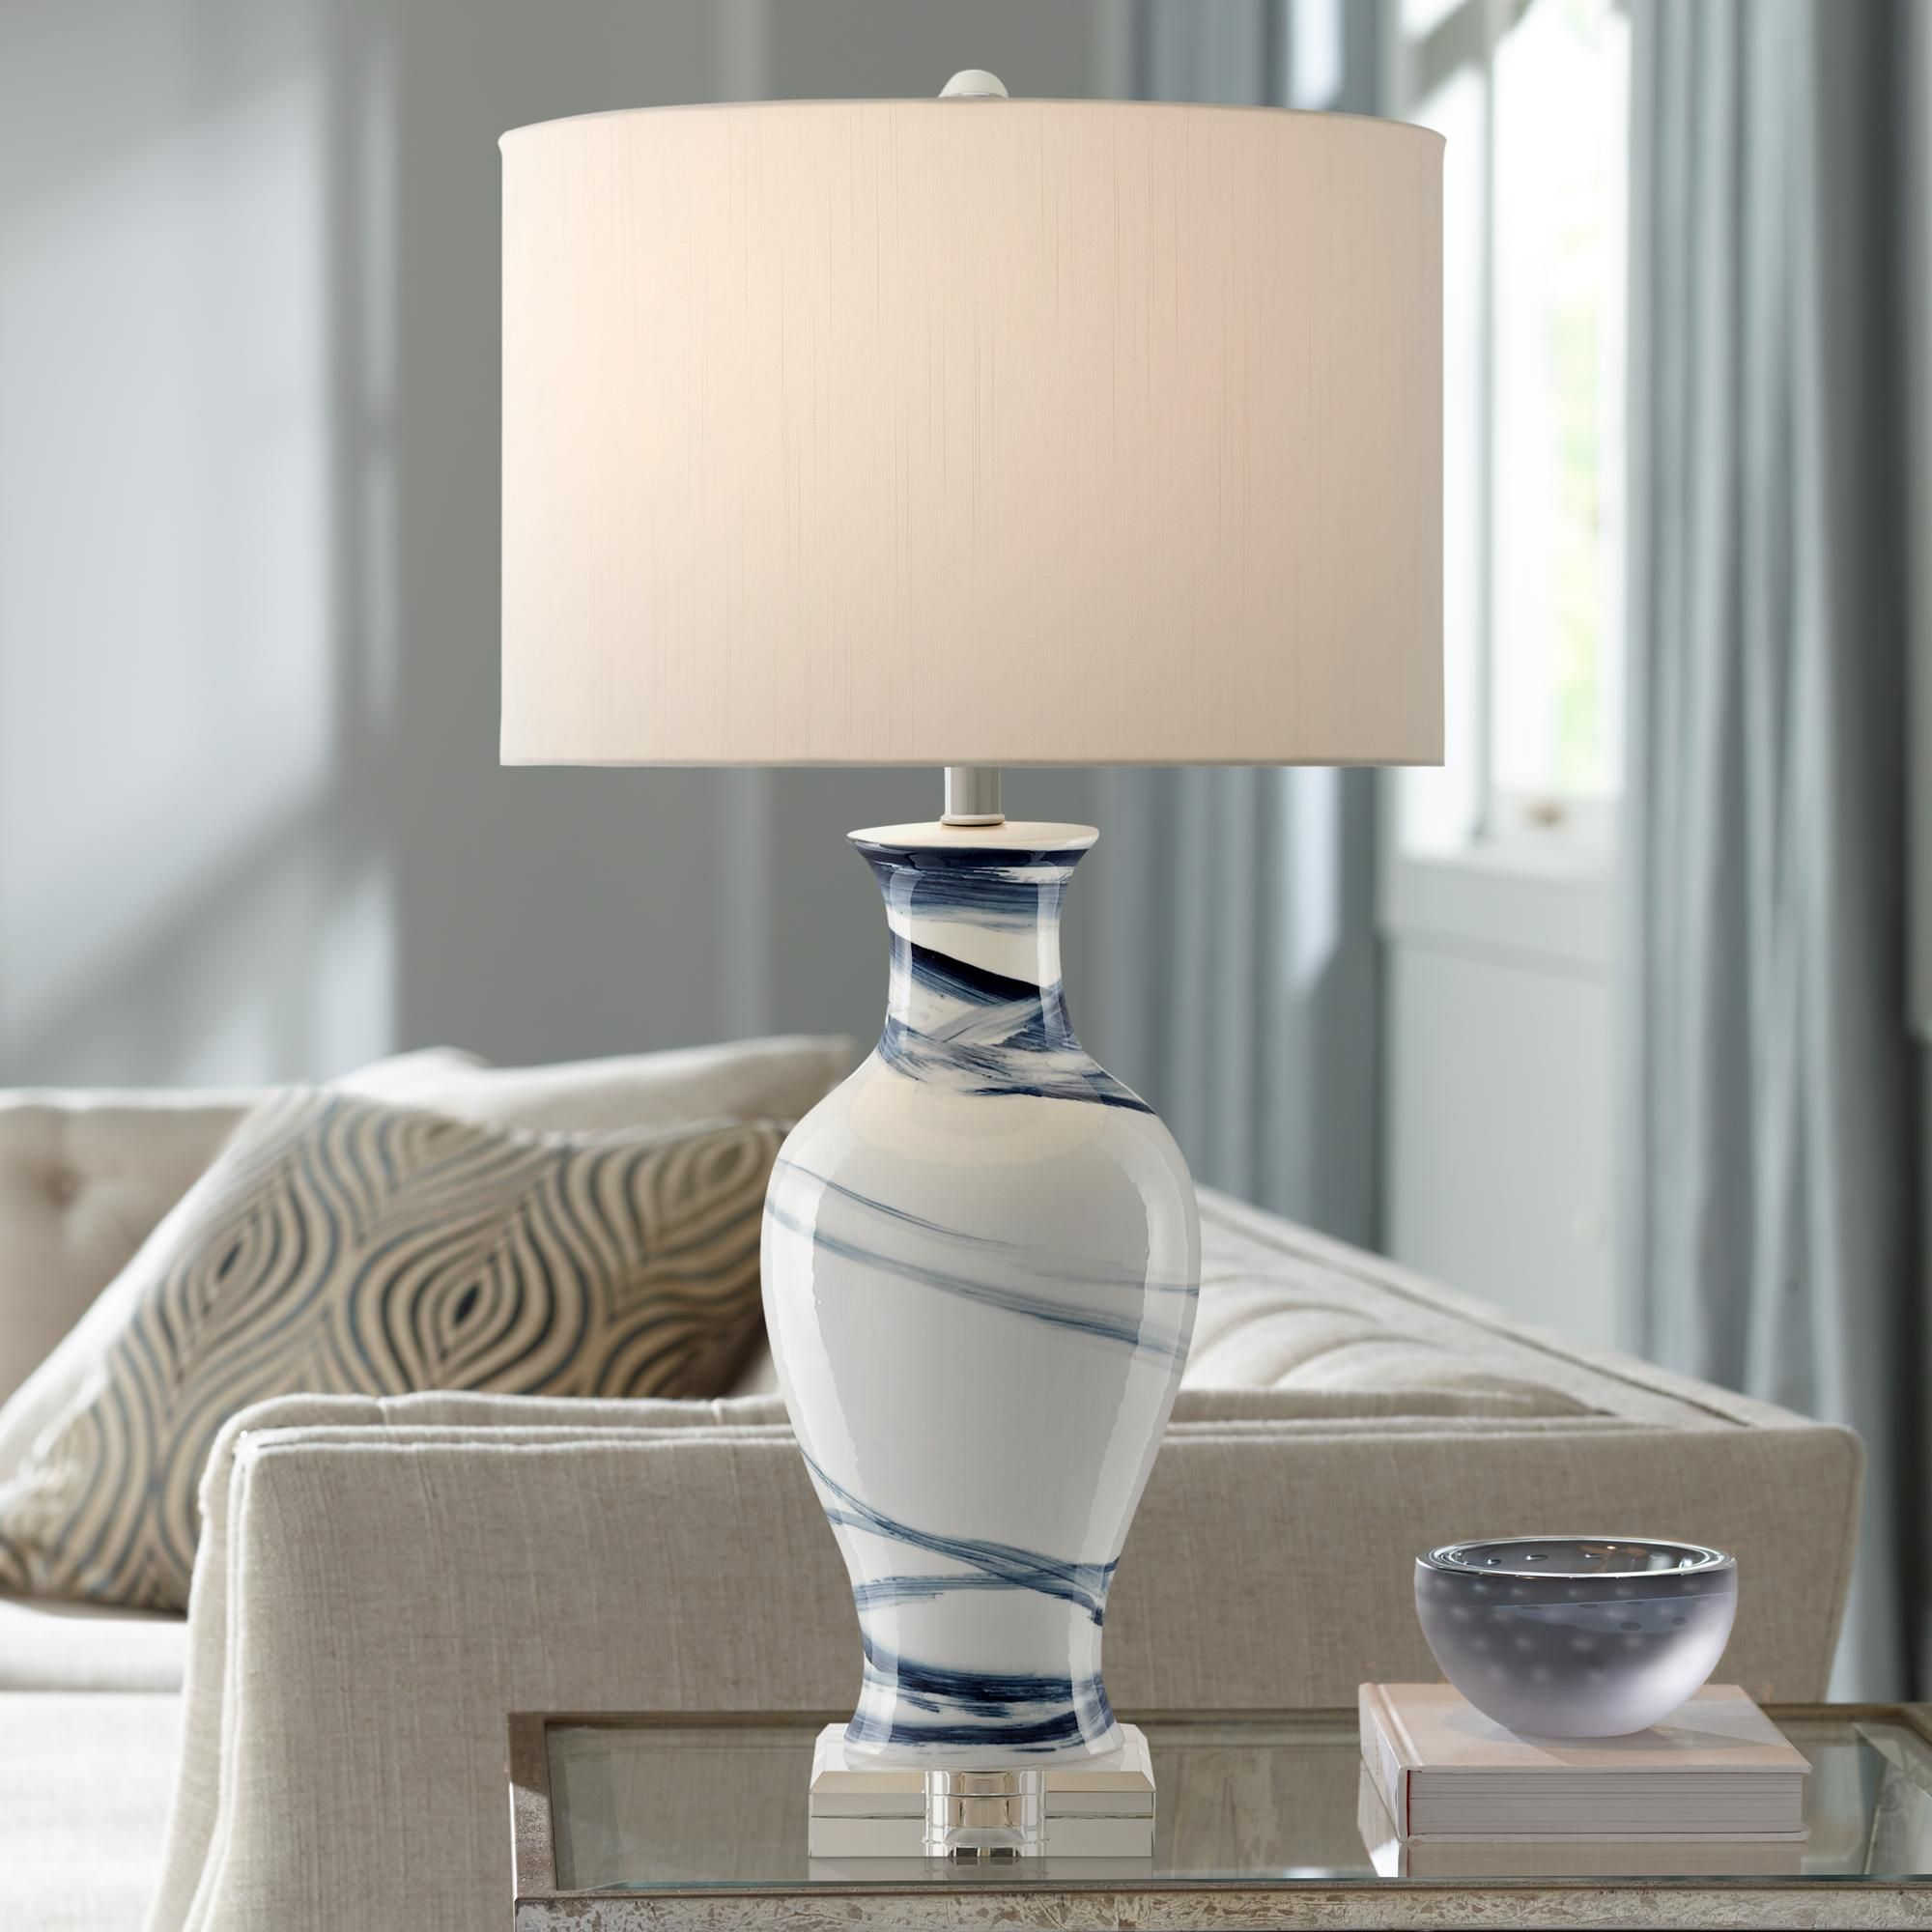 Table Lamps Currey And Company Hanni White Blue Porcelain Table Lamp In 2020 Table Lamp Table Lamp Wood Lamp